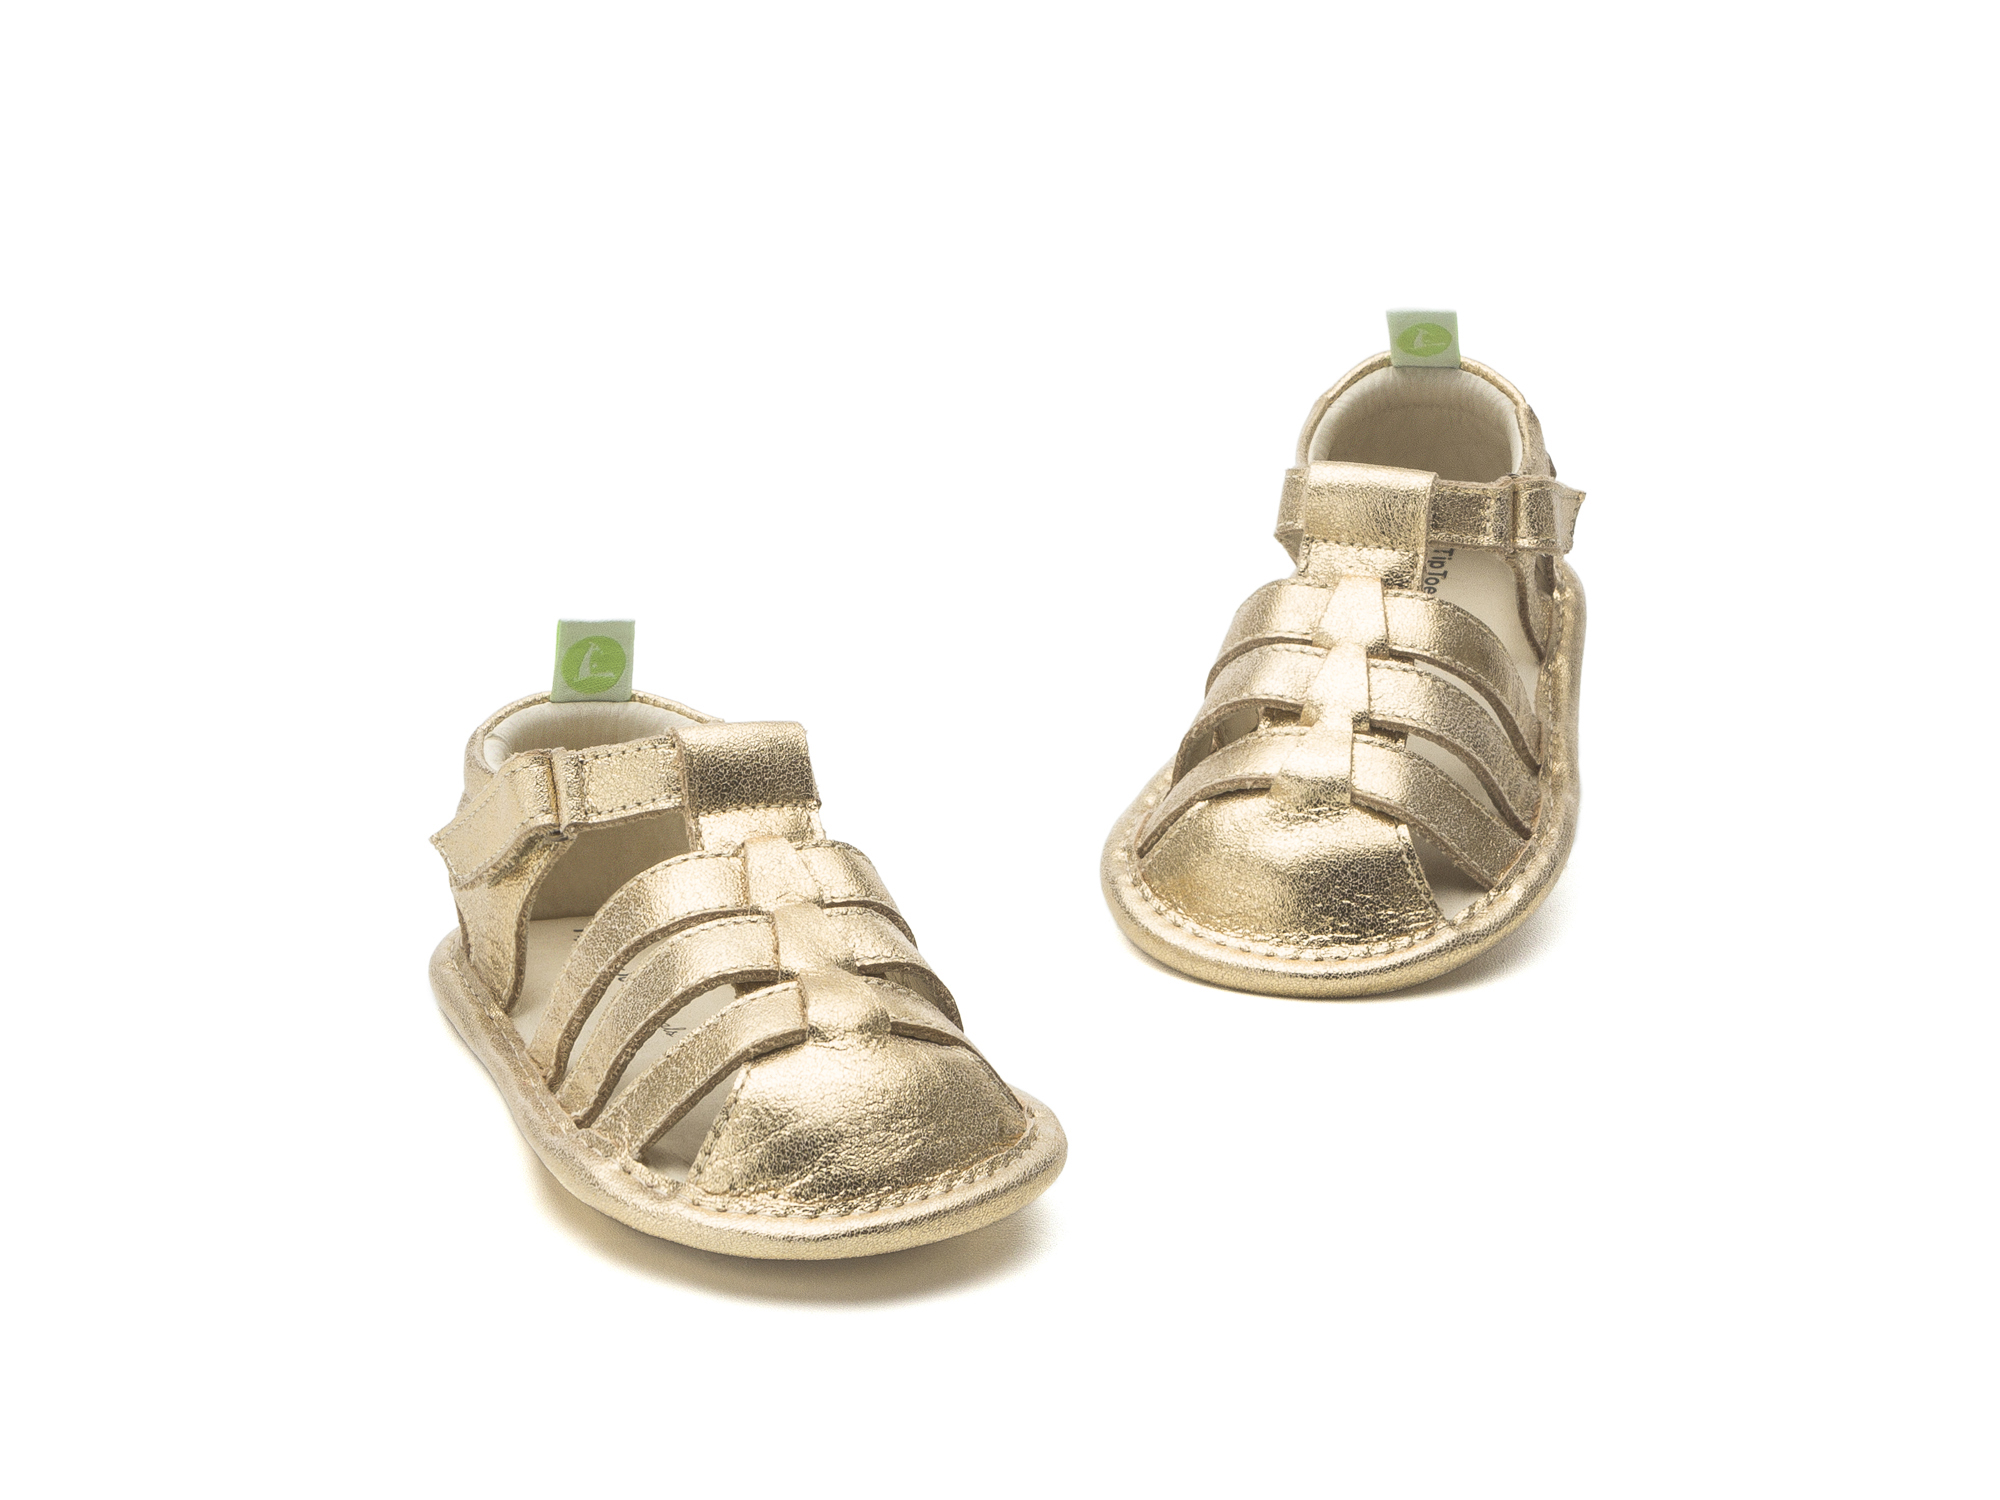 Sandal Minty Golden Shine Baby for ages 0 to 2 years - 2